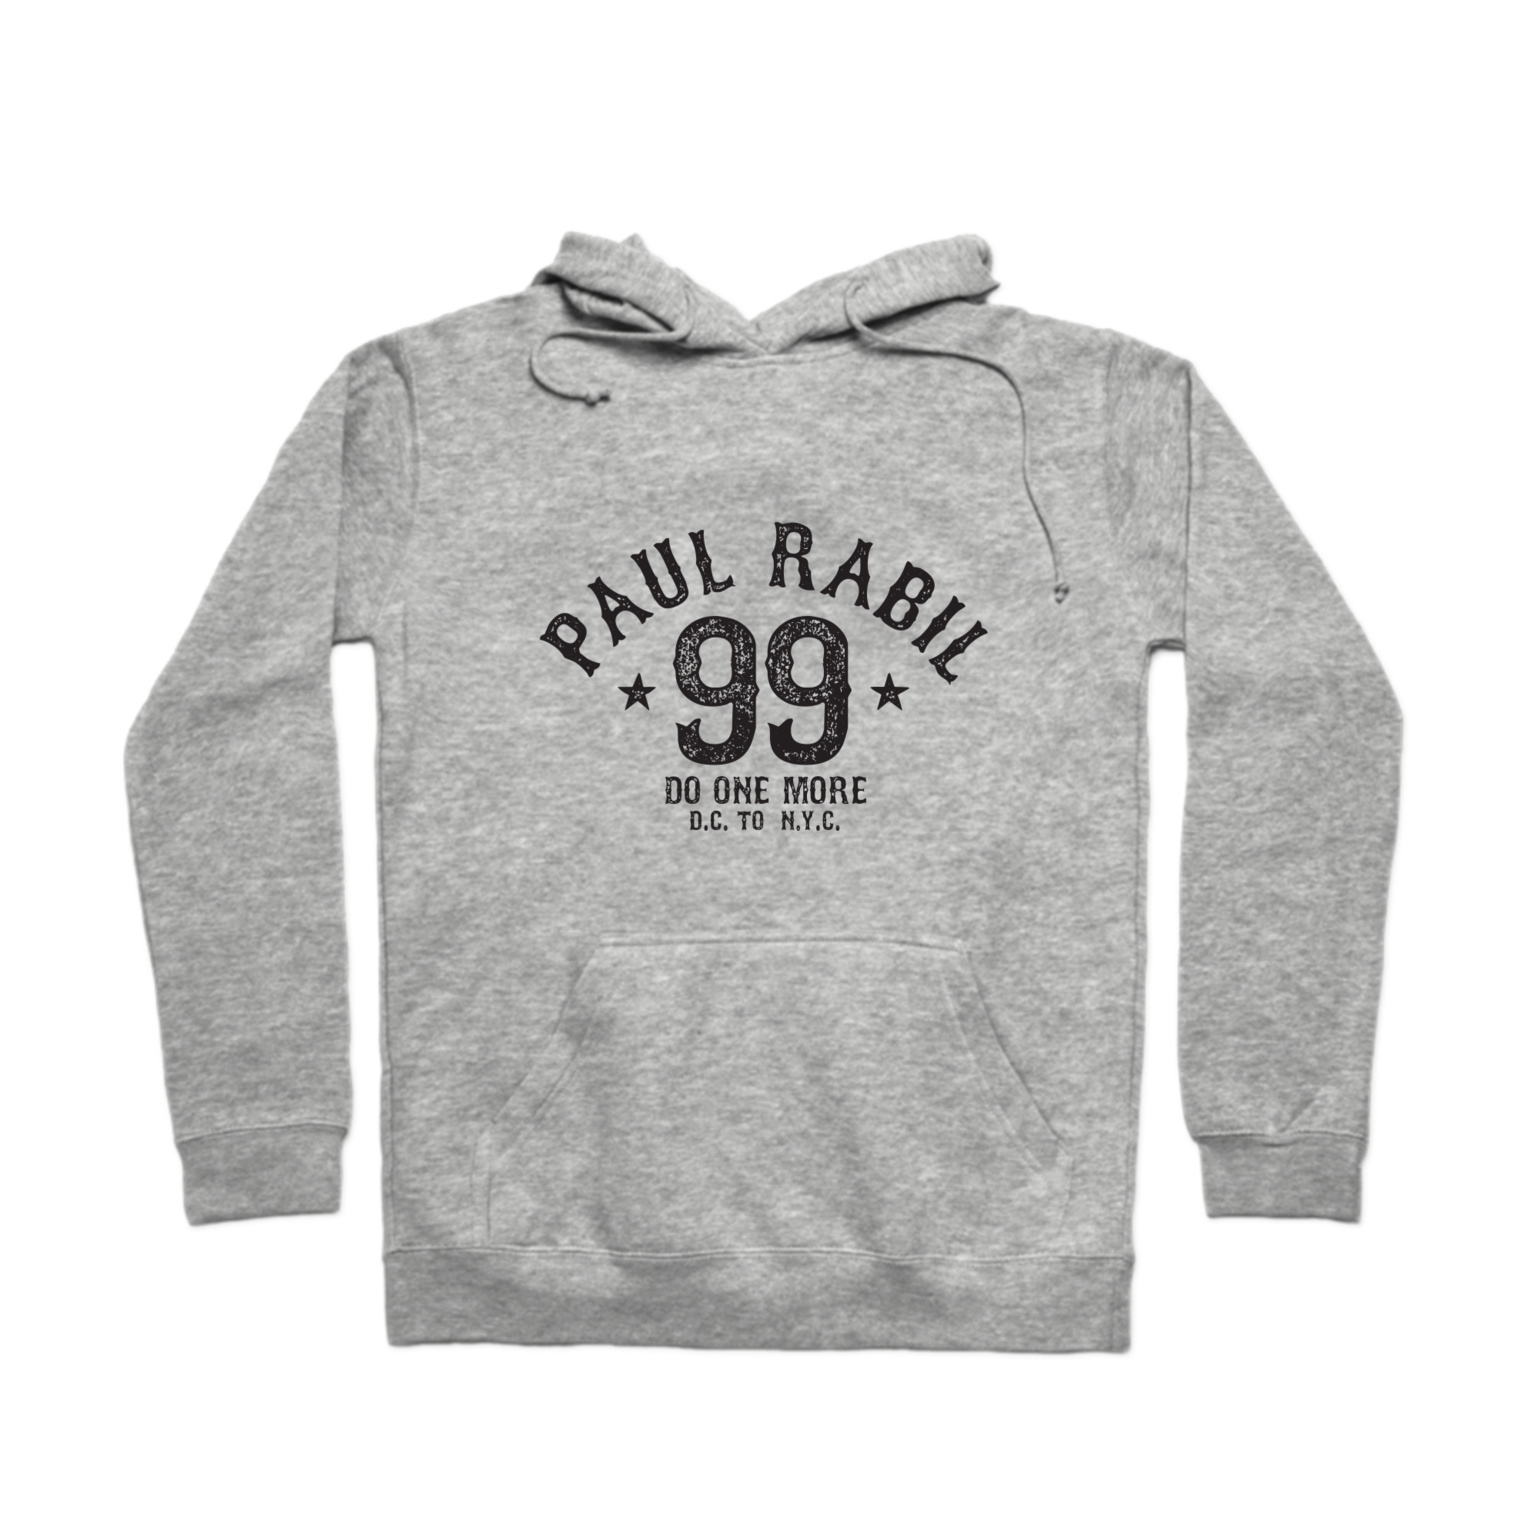 Paul Rabil Do One More Pullover Hoodie